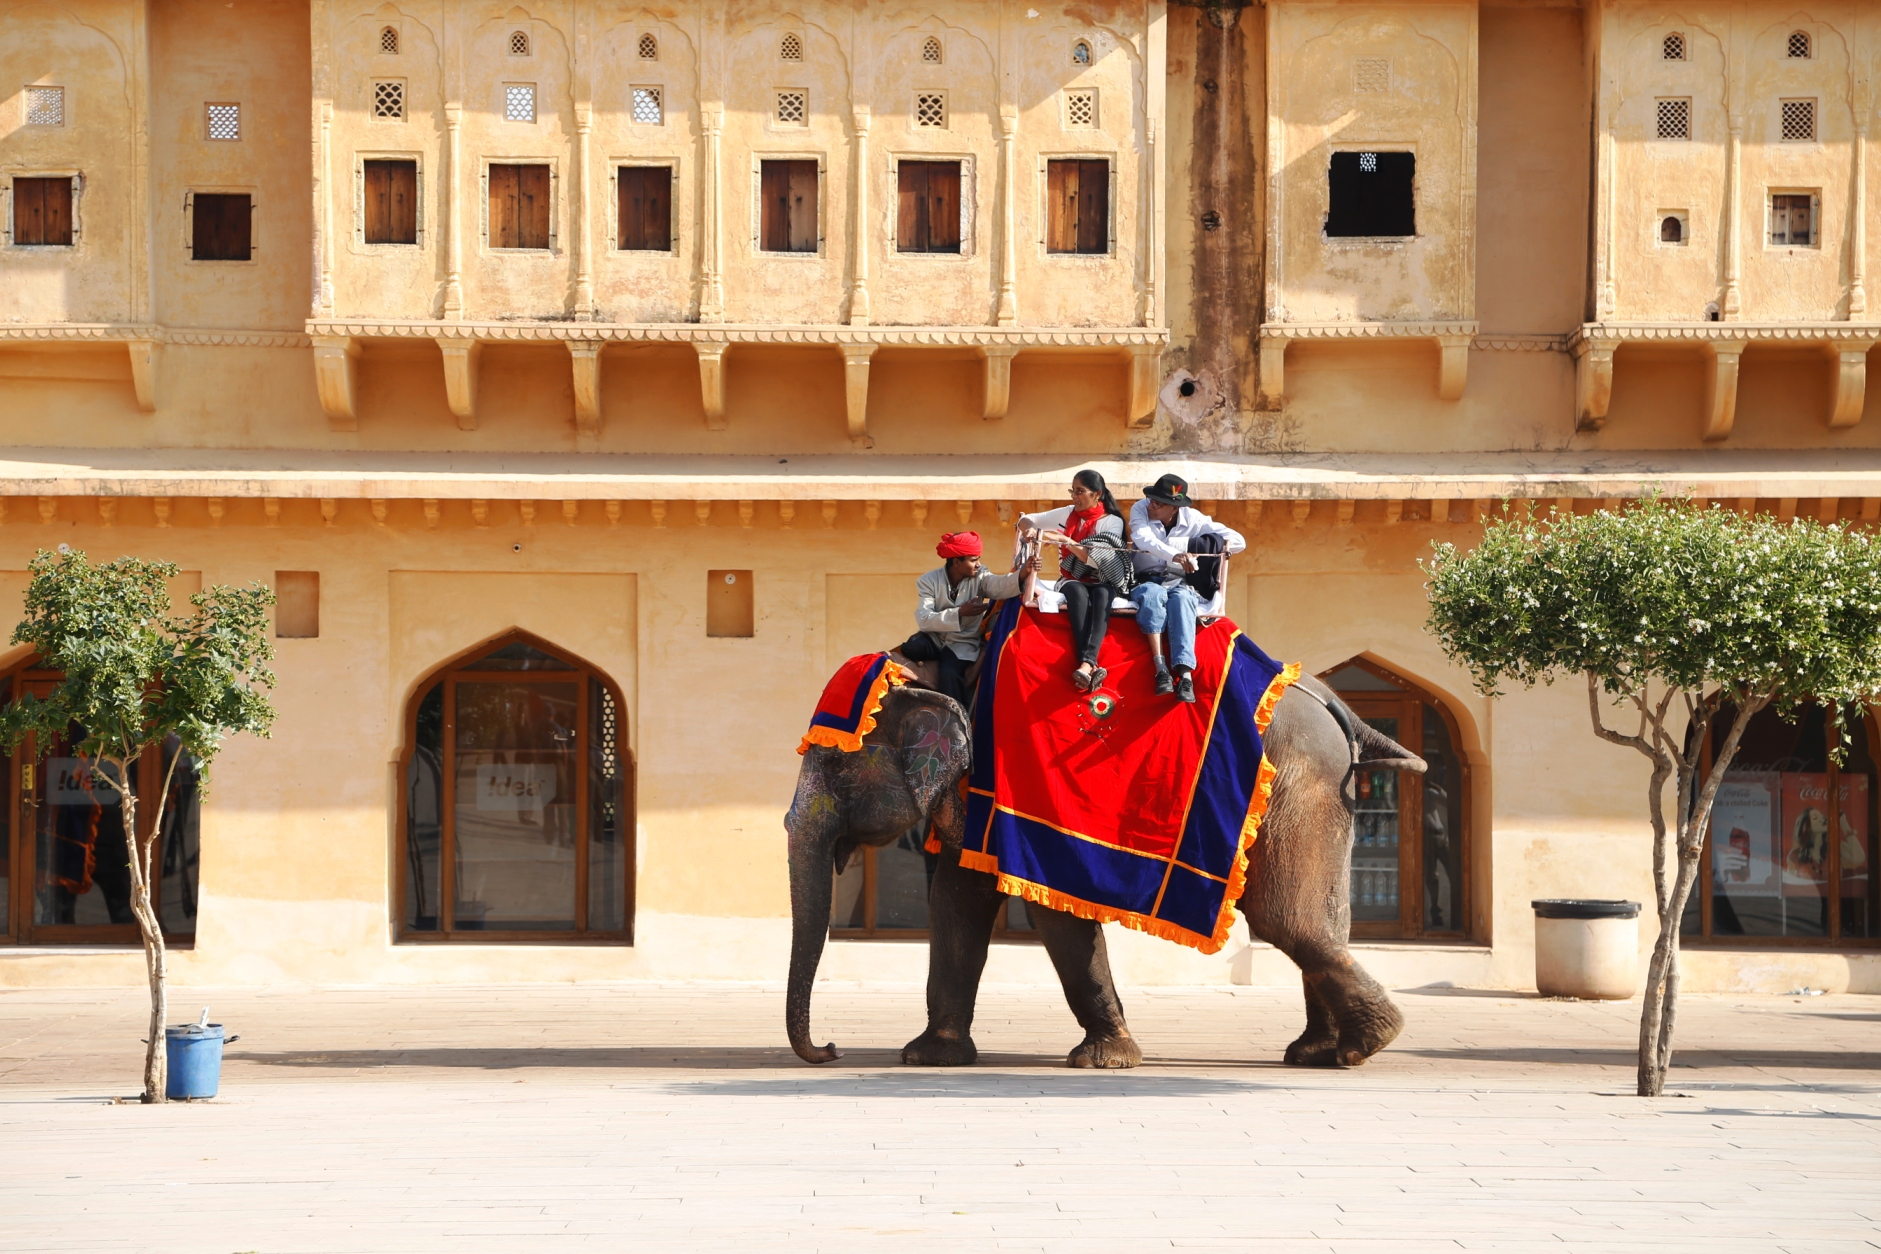 Tourists on an Elephant Ride at Amber palace in Jaipur